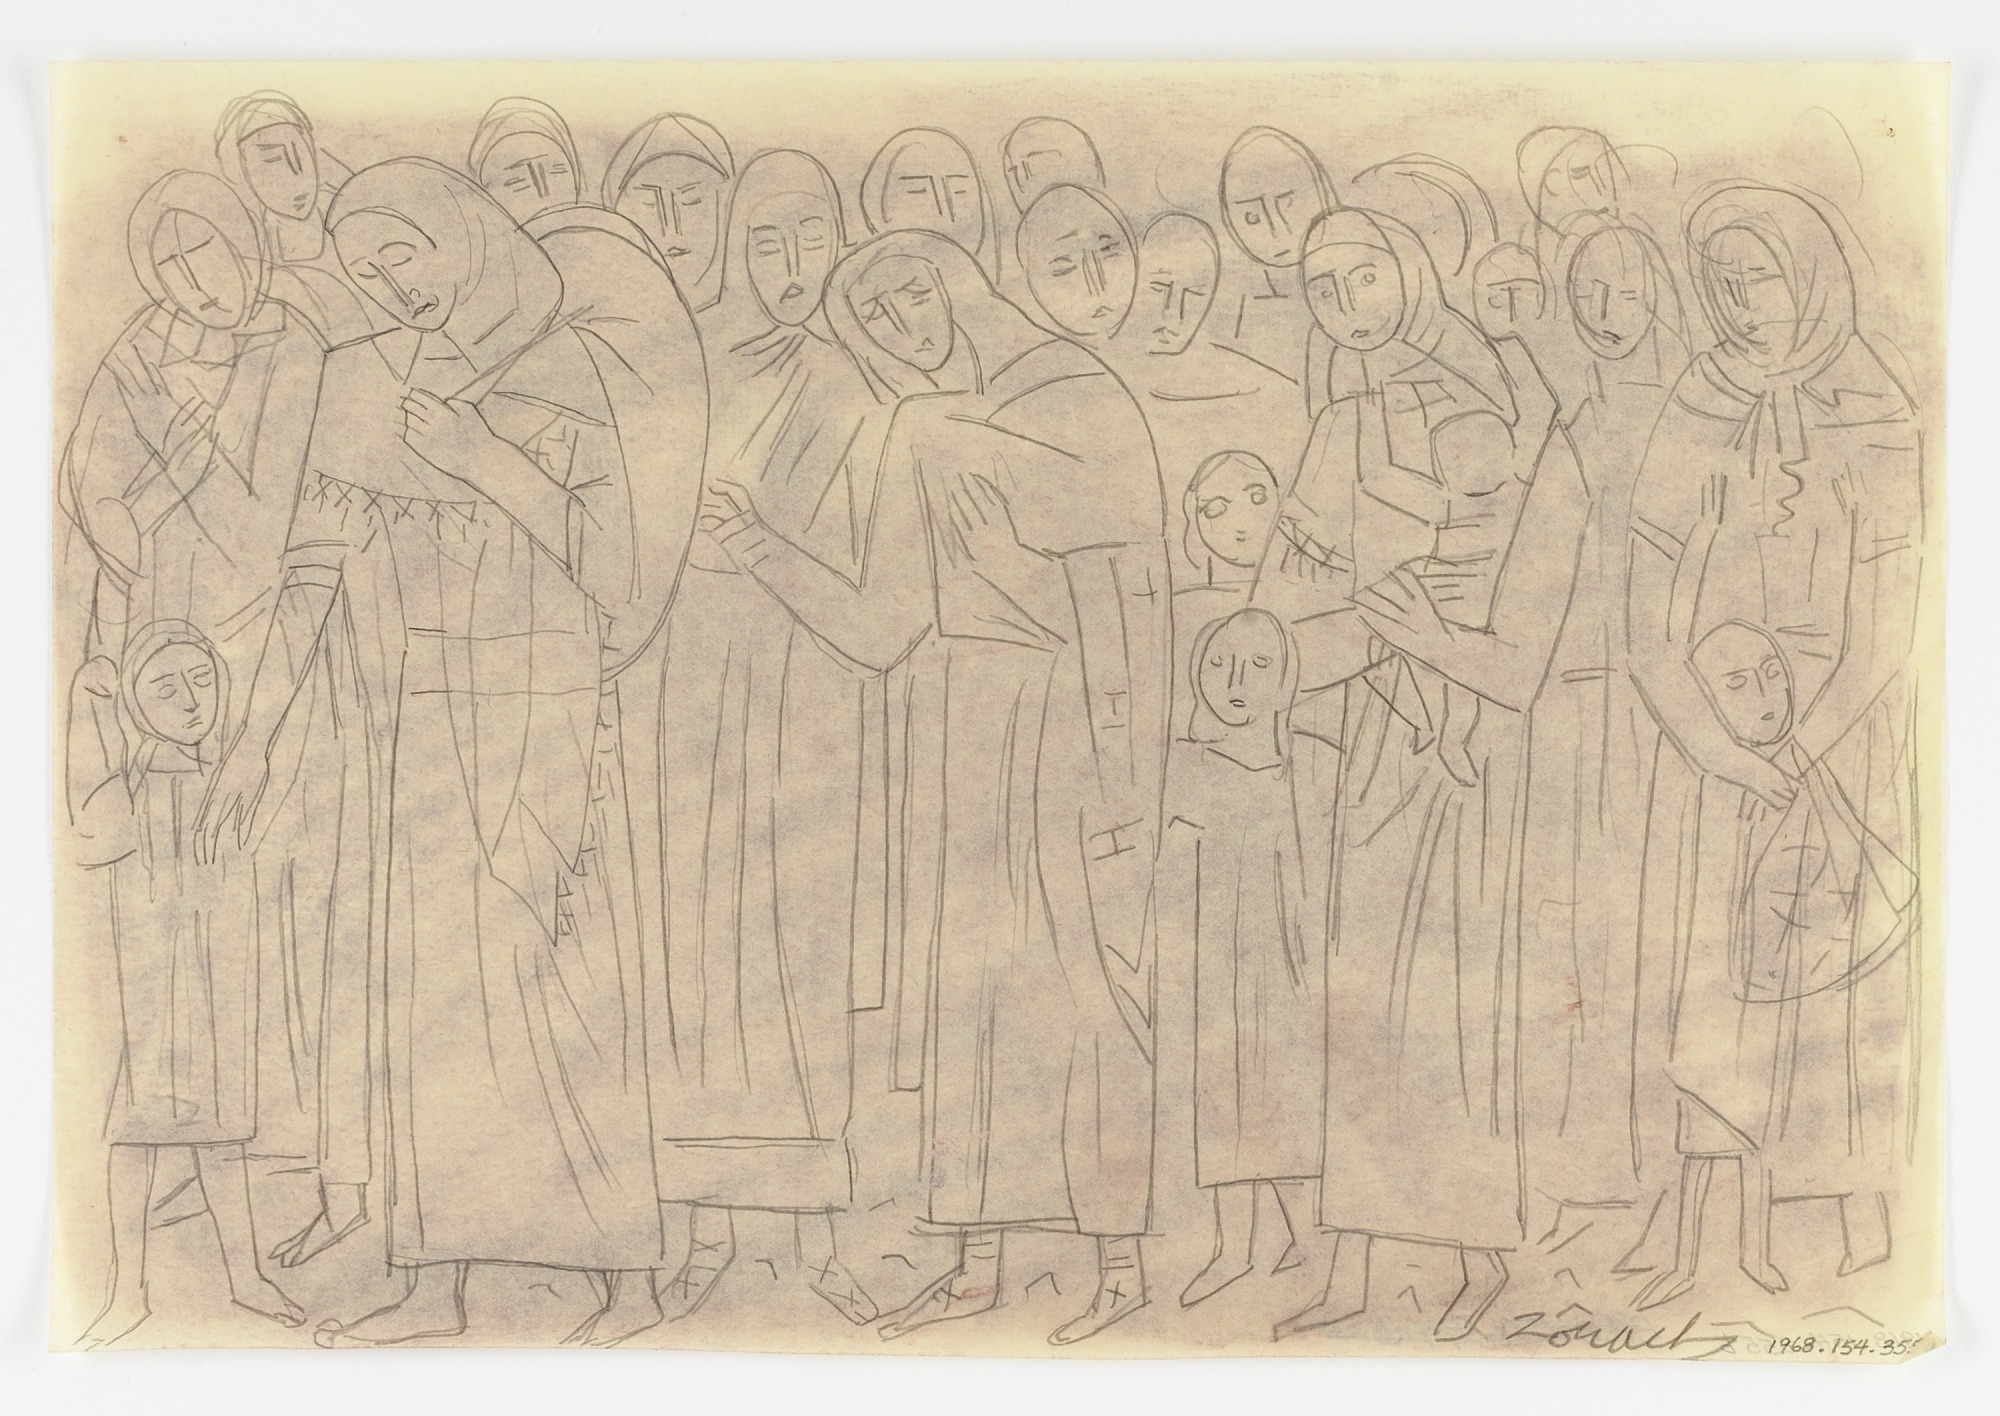 Study for Panel of Monument to Six Million Jews Destroyed by the Nazis in Germany